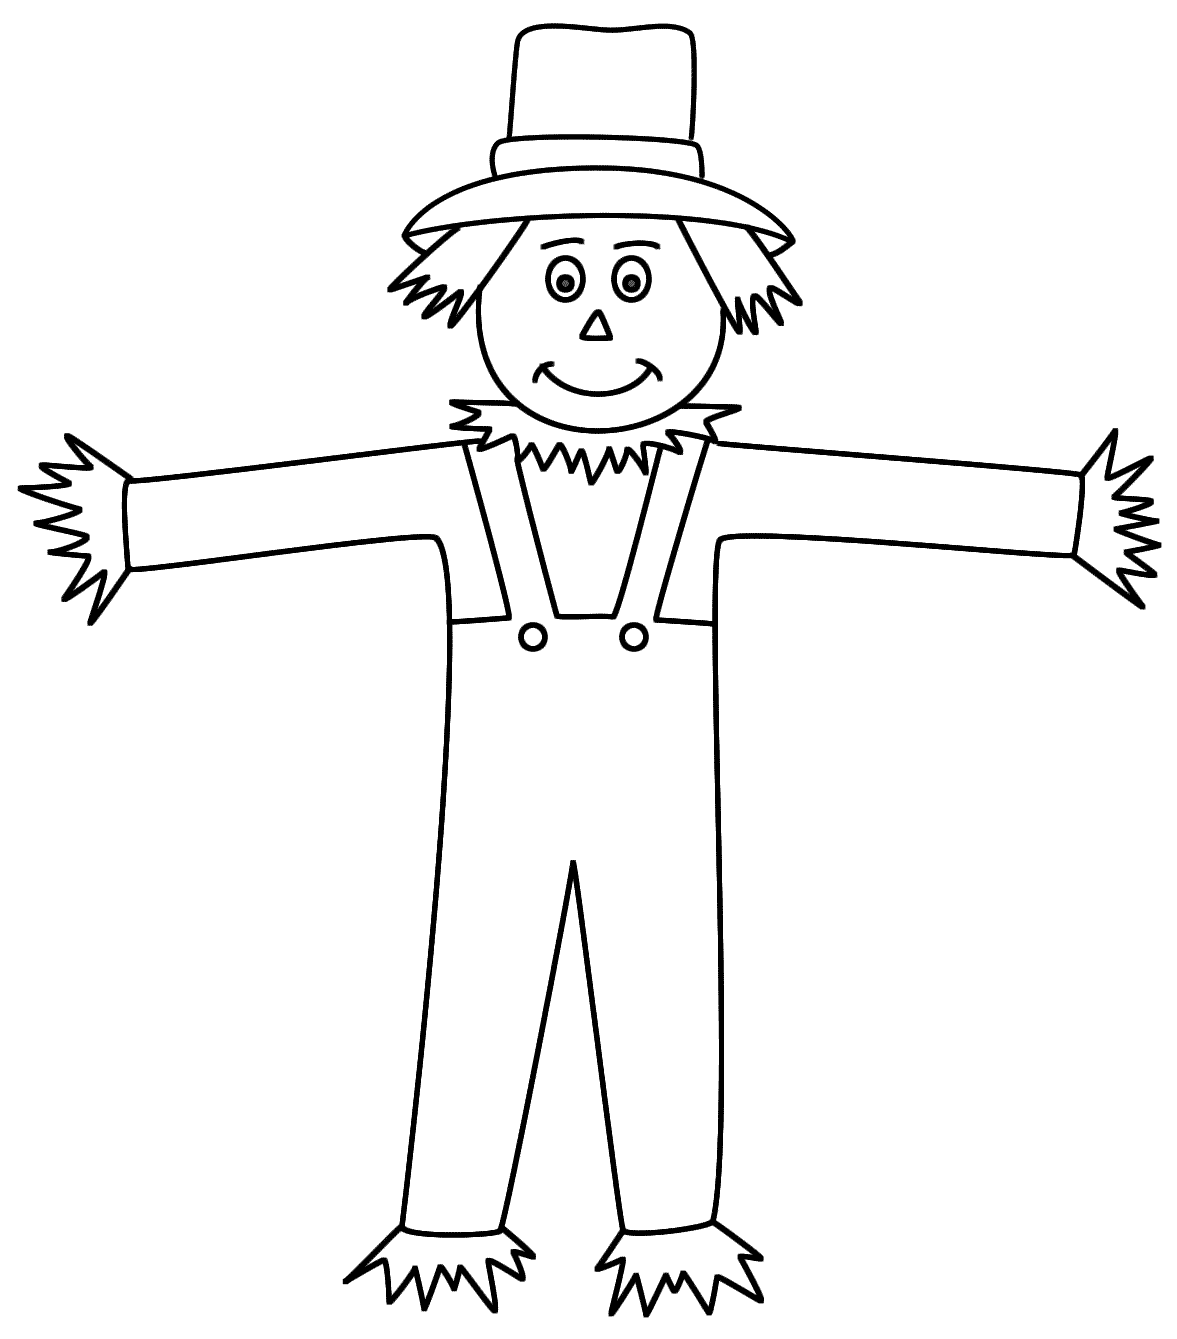 scarecrow coloring pages free printable scarecrow coloring pages for kids scarecrow pages coloring